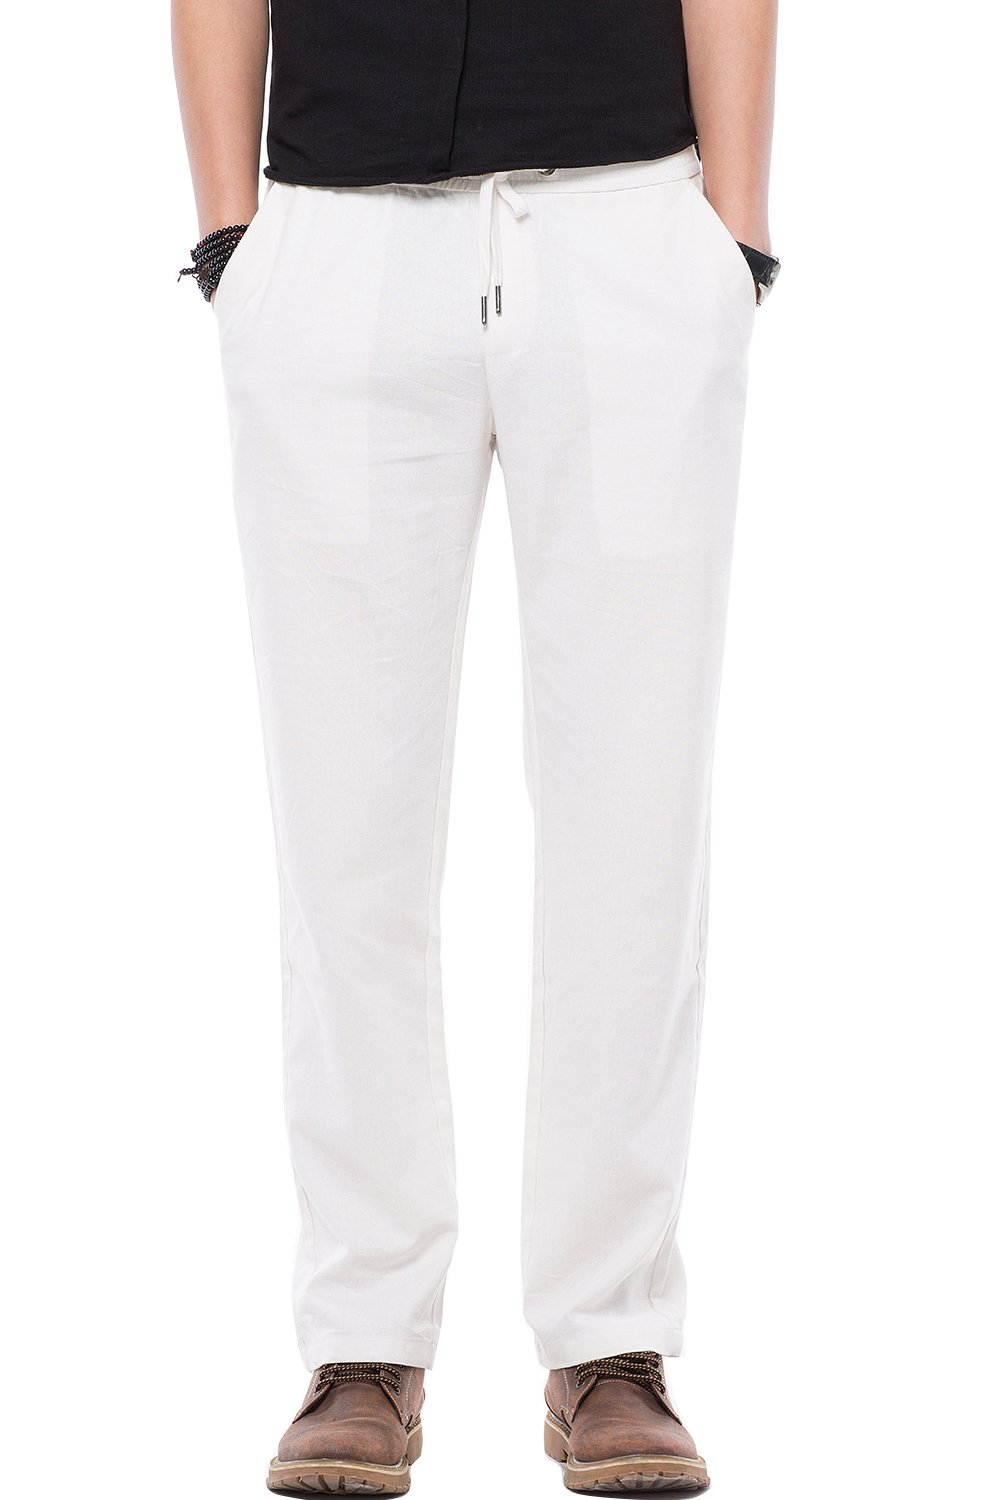 Lightweight Comfy Straight Fit Pants for Mens Lightweight Casual Slack for Youth Junior Off-White US Size M